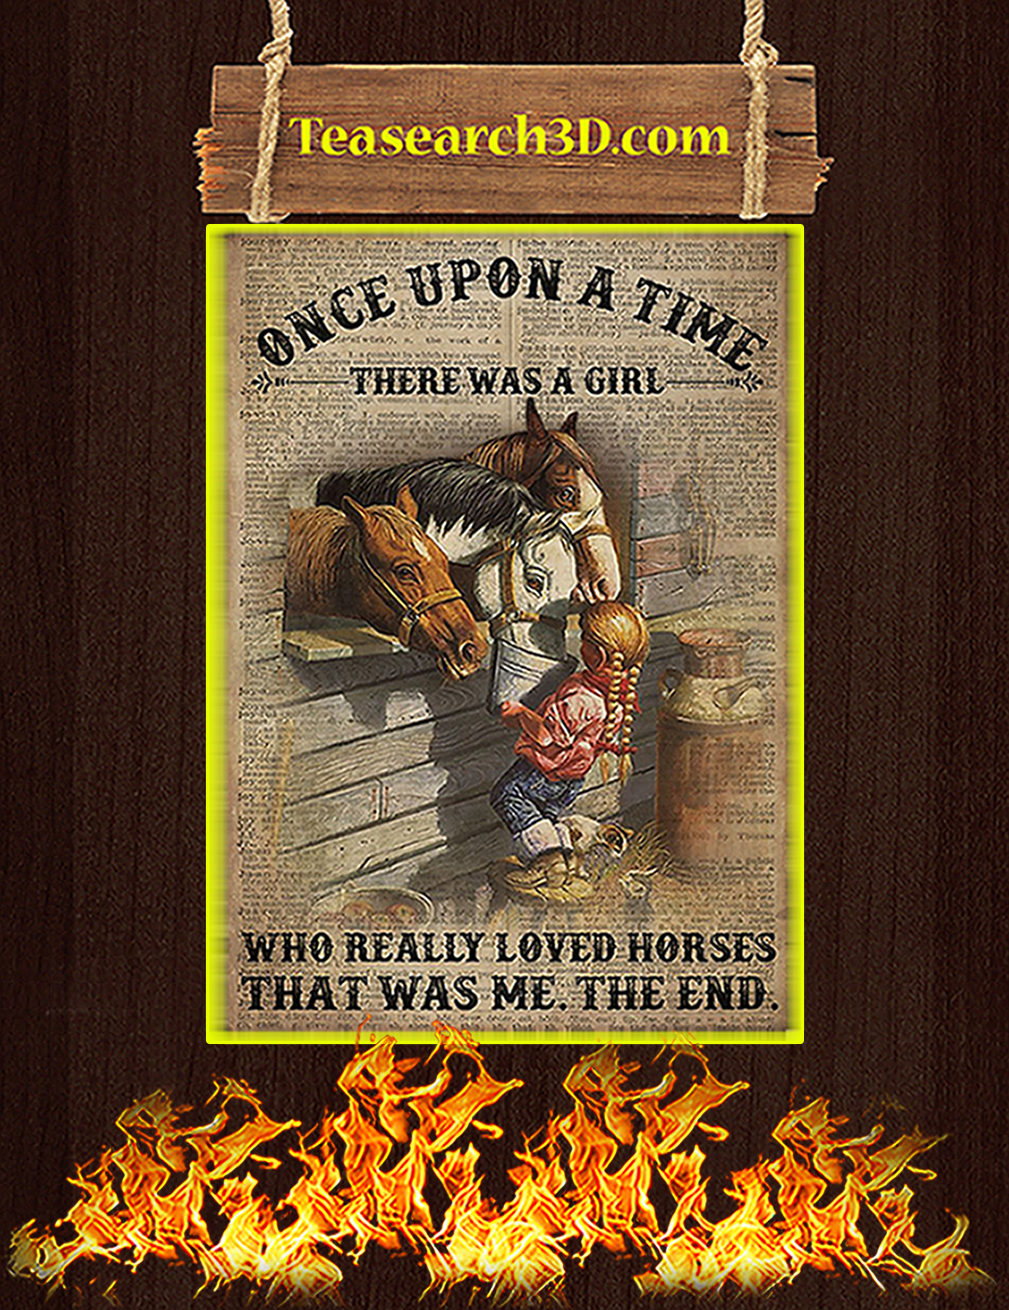 Once upon a time there was a girl who really loved horses poster